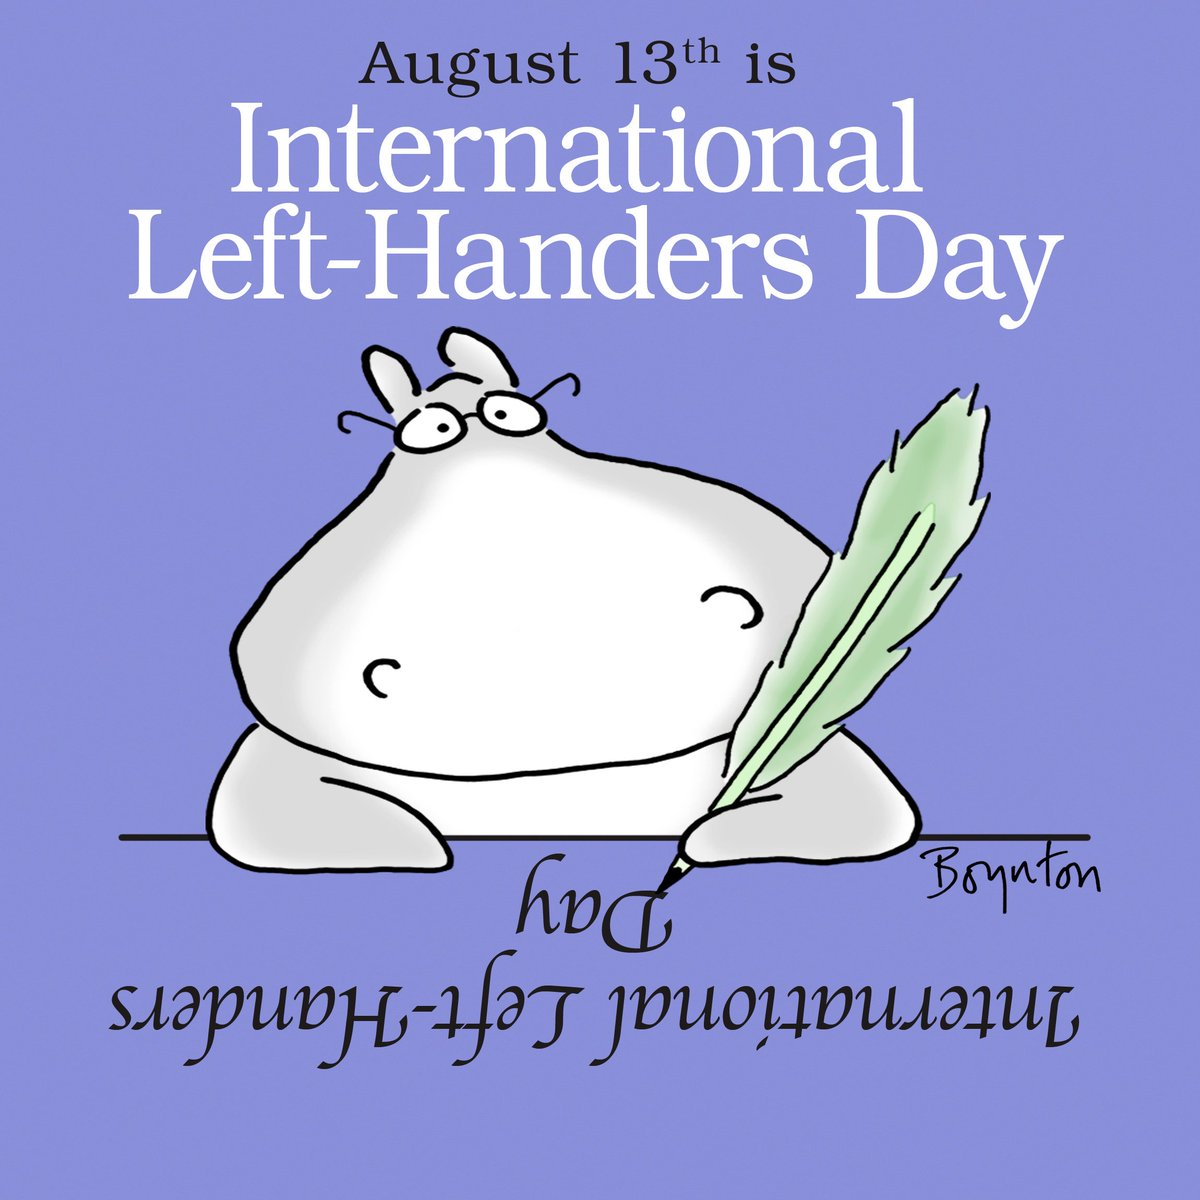 RT @SandyBoynton: Happy International Left-Handers Day! #internationallefthandersday https://t.co/xRdMDVHevi